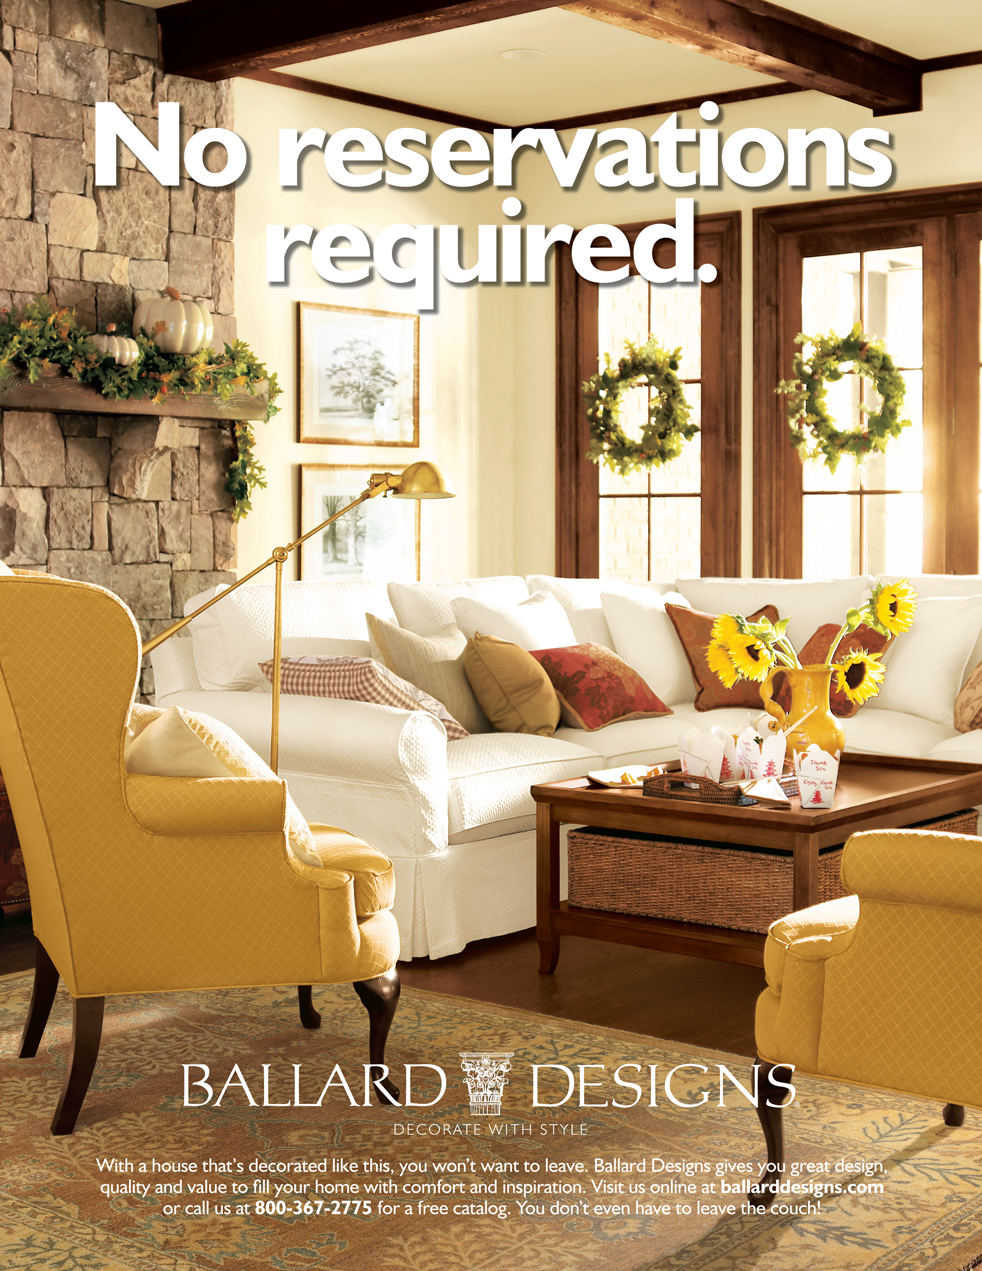 Ballard Designs West Chester Ohio Welcome To Roosevelt Field A Shopping Center In Garden City Ny